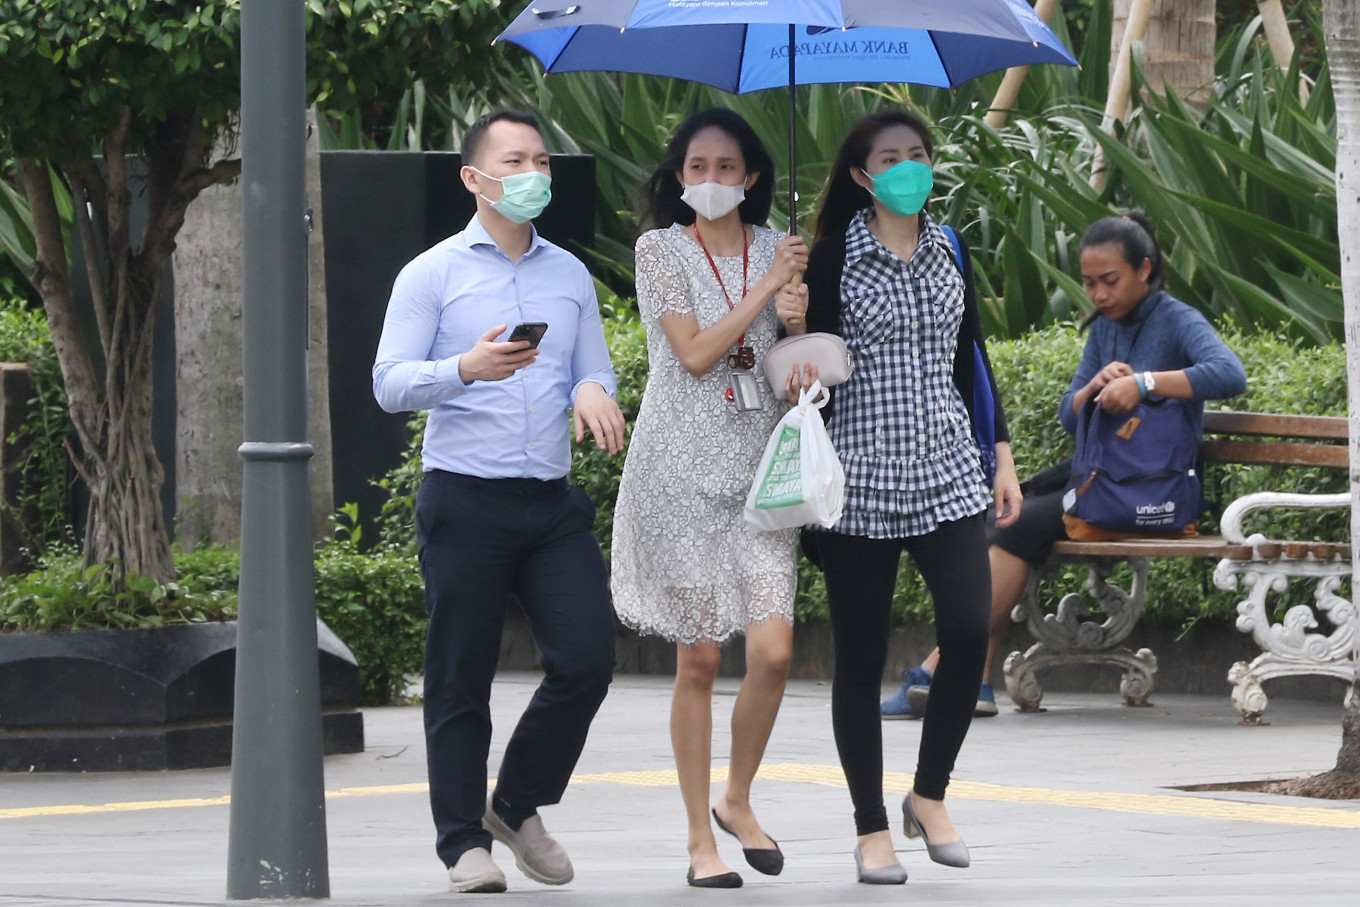 Virus-free Indonesia more threatened by COVID-19 than Singapore, Malaysia: Survey